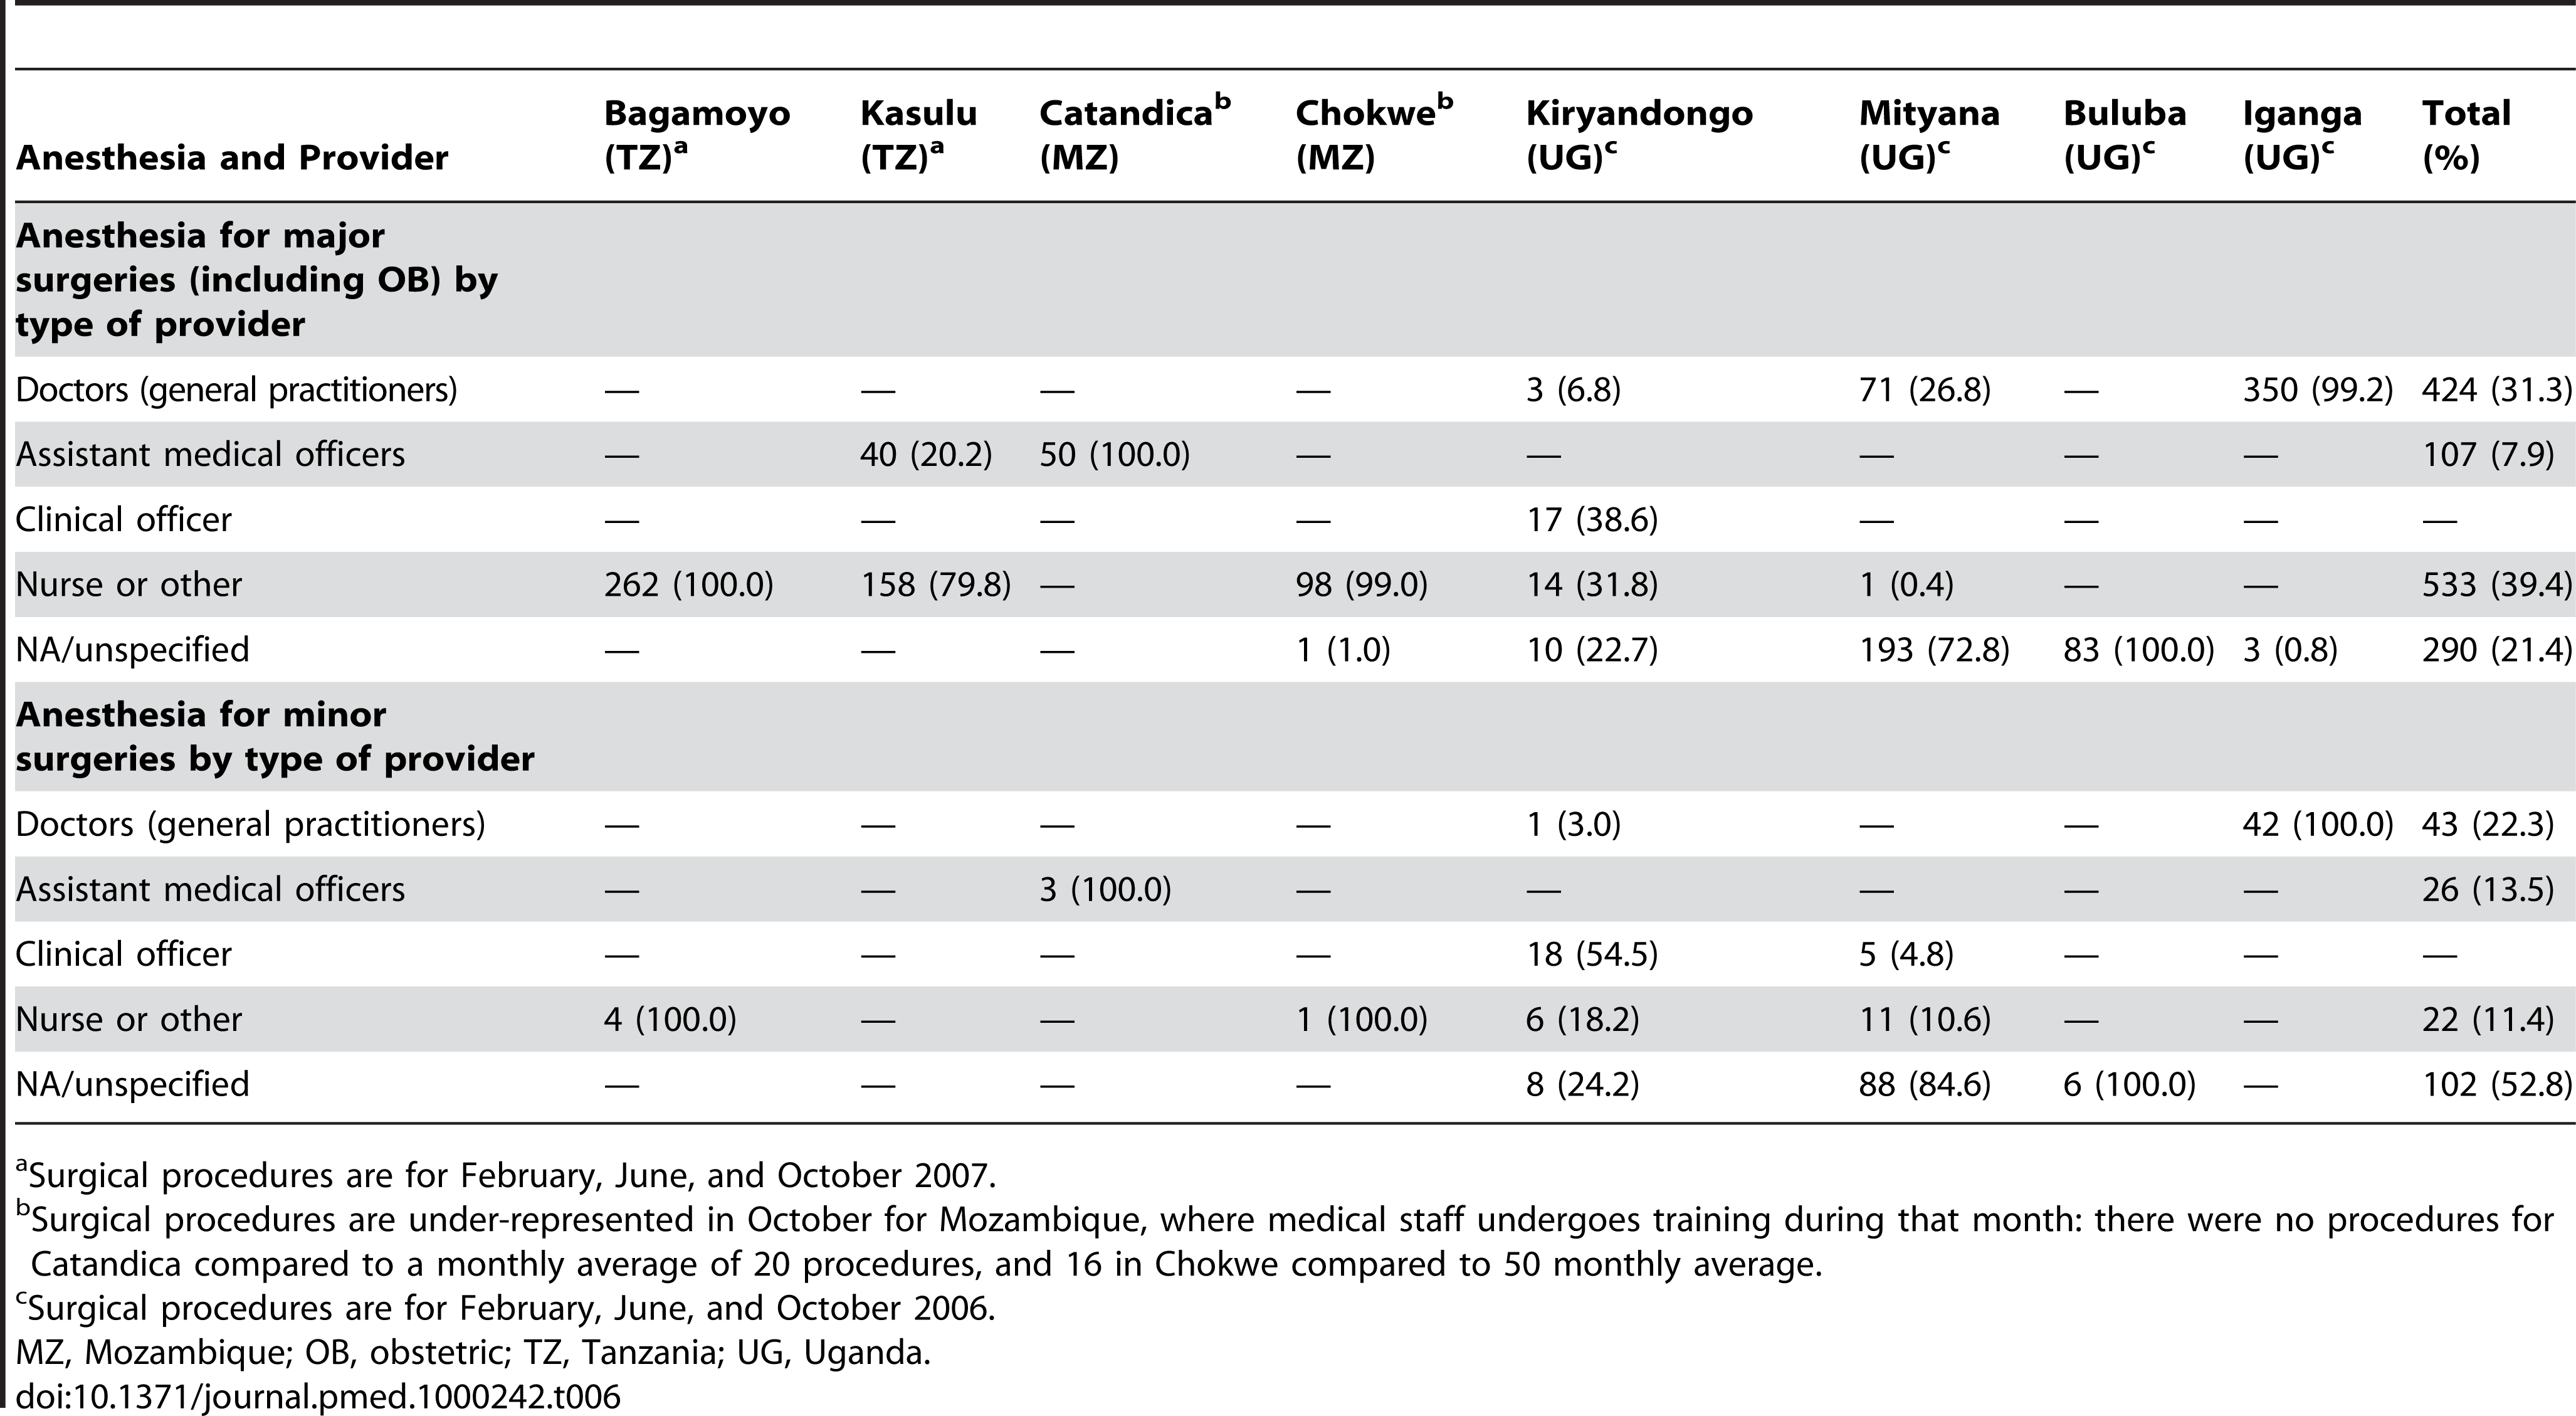 Anesthesia provided by type of medical provider for three selected months (February, June, and October).